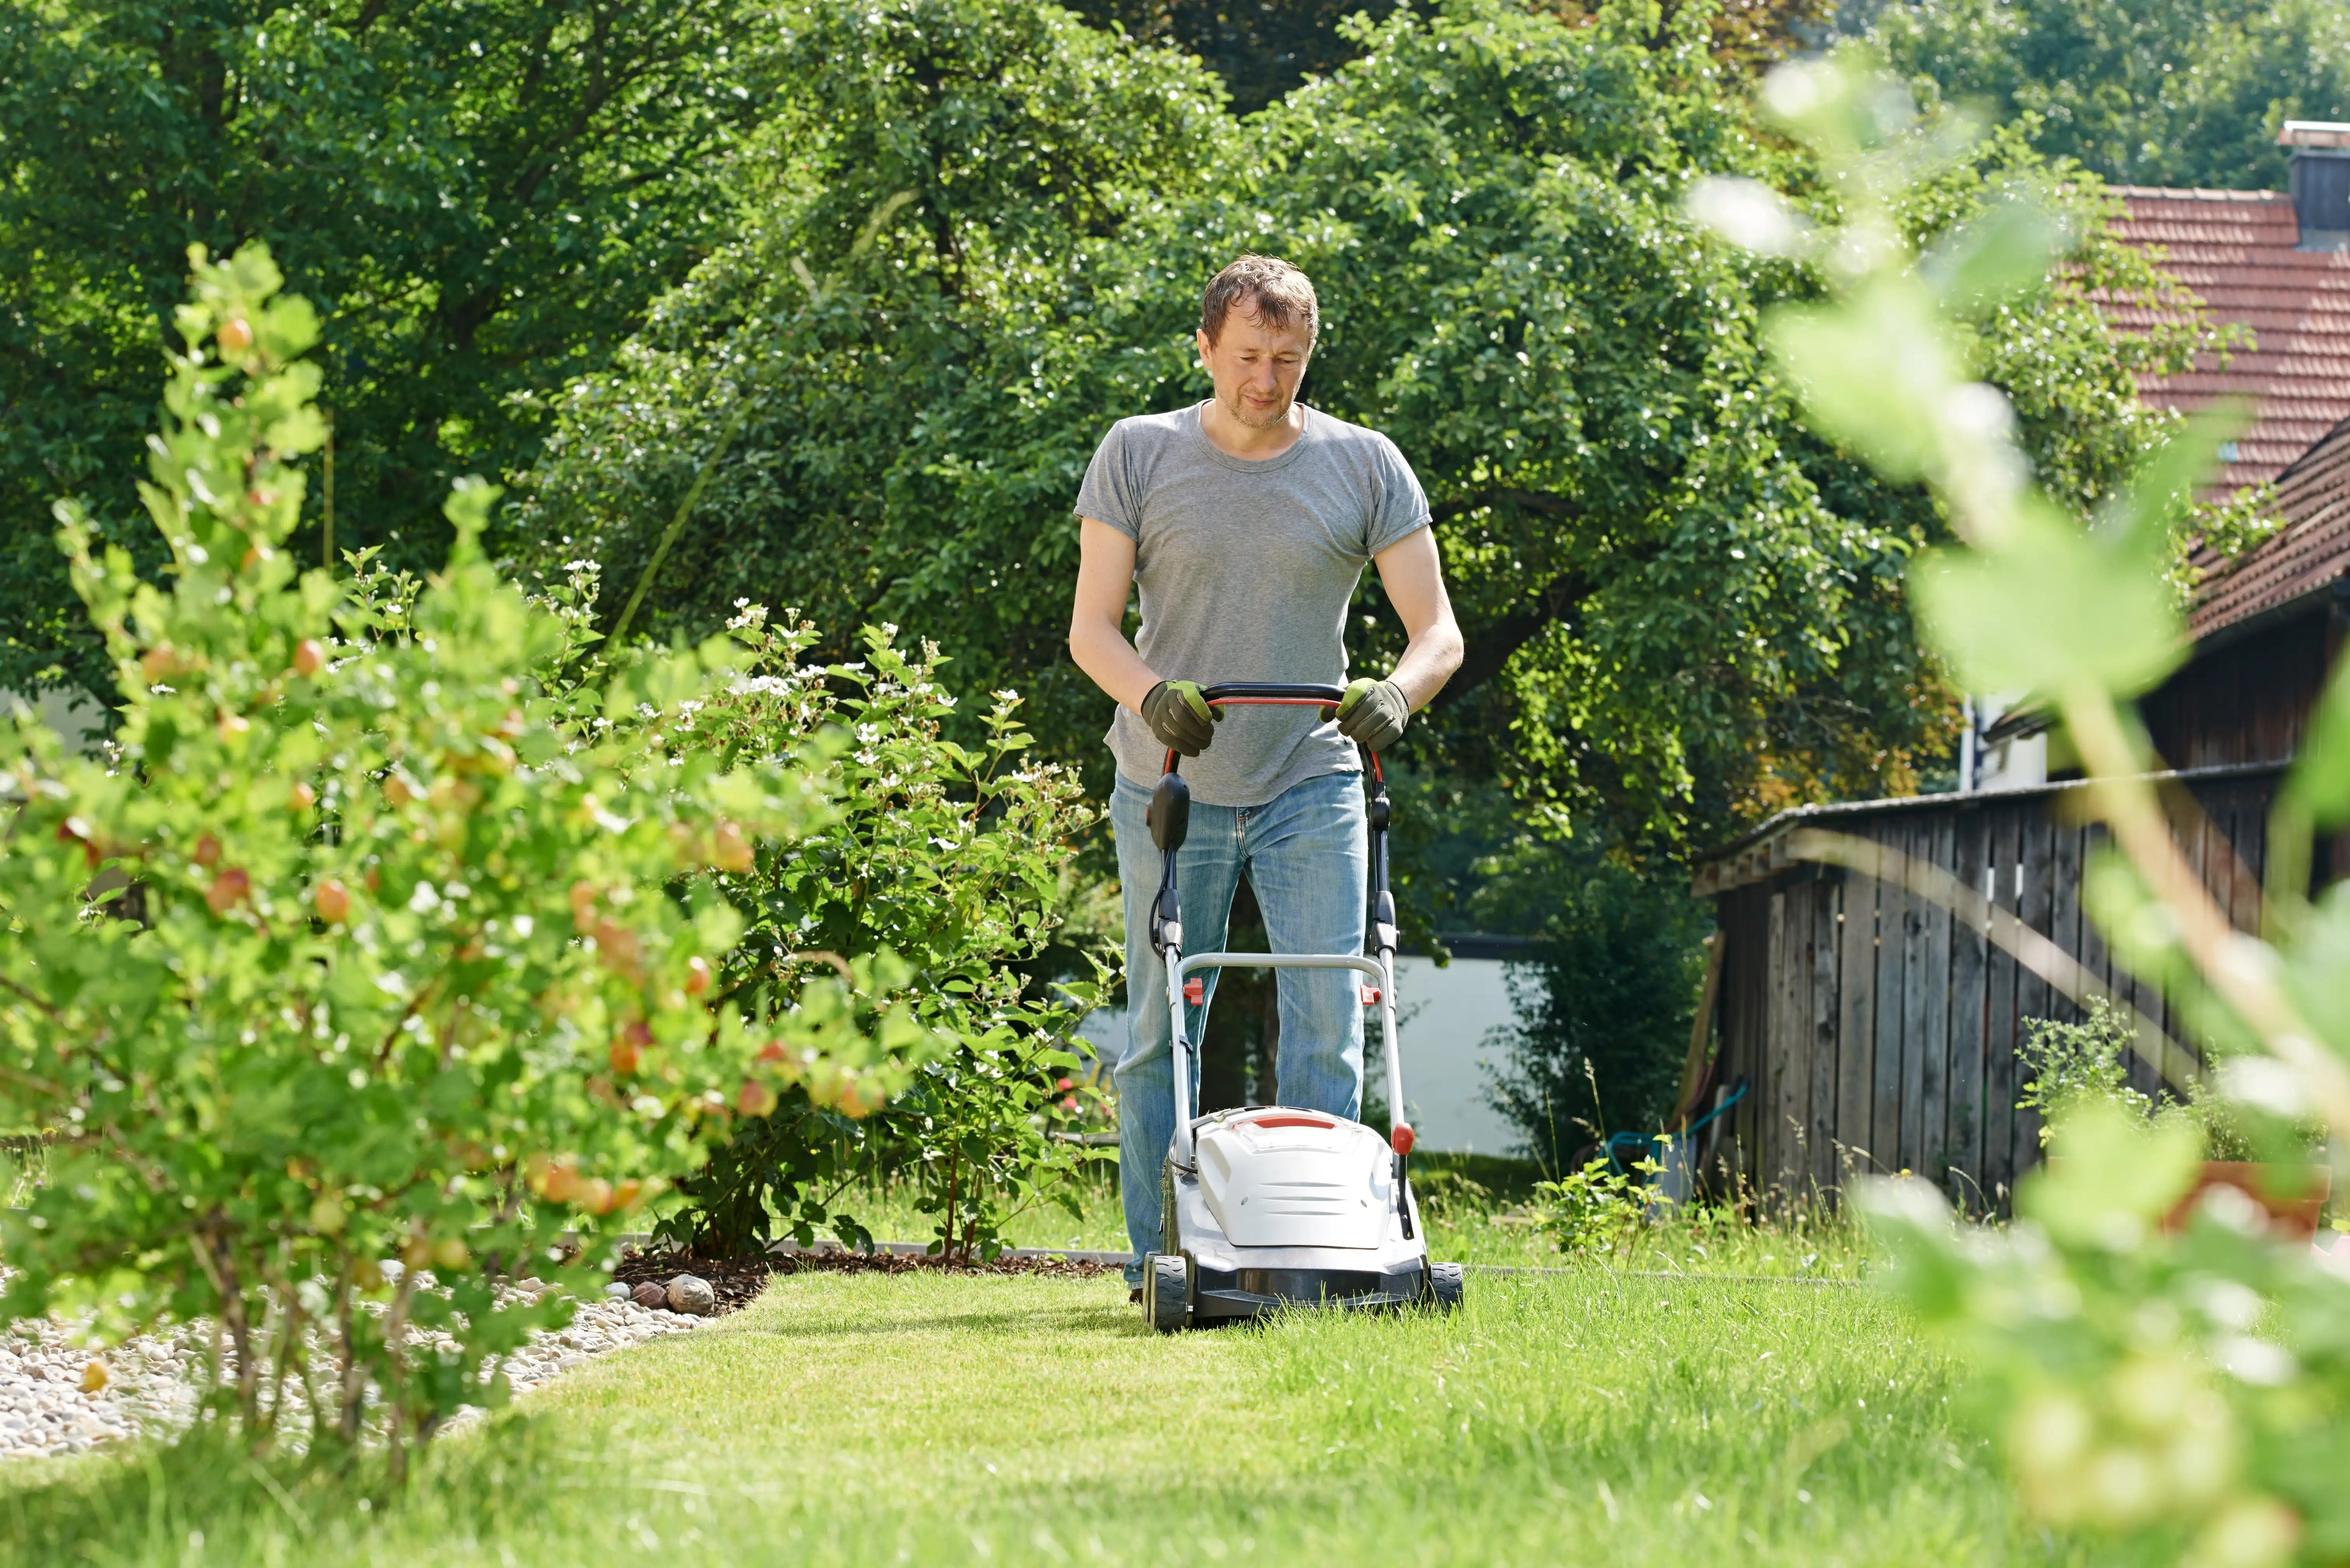 mowing grass with electric lawn mowrer in backyard